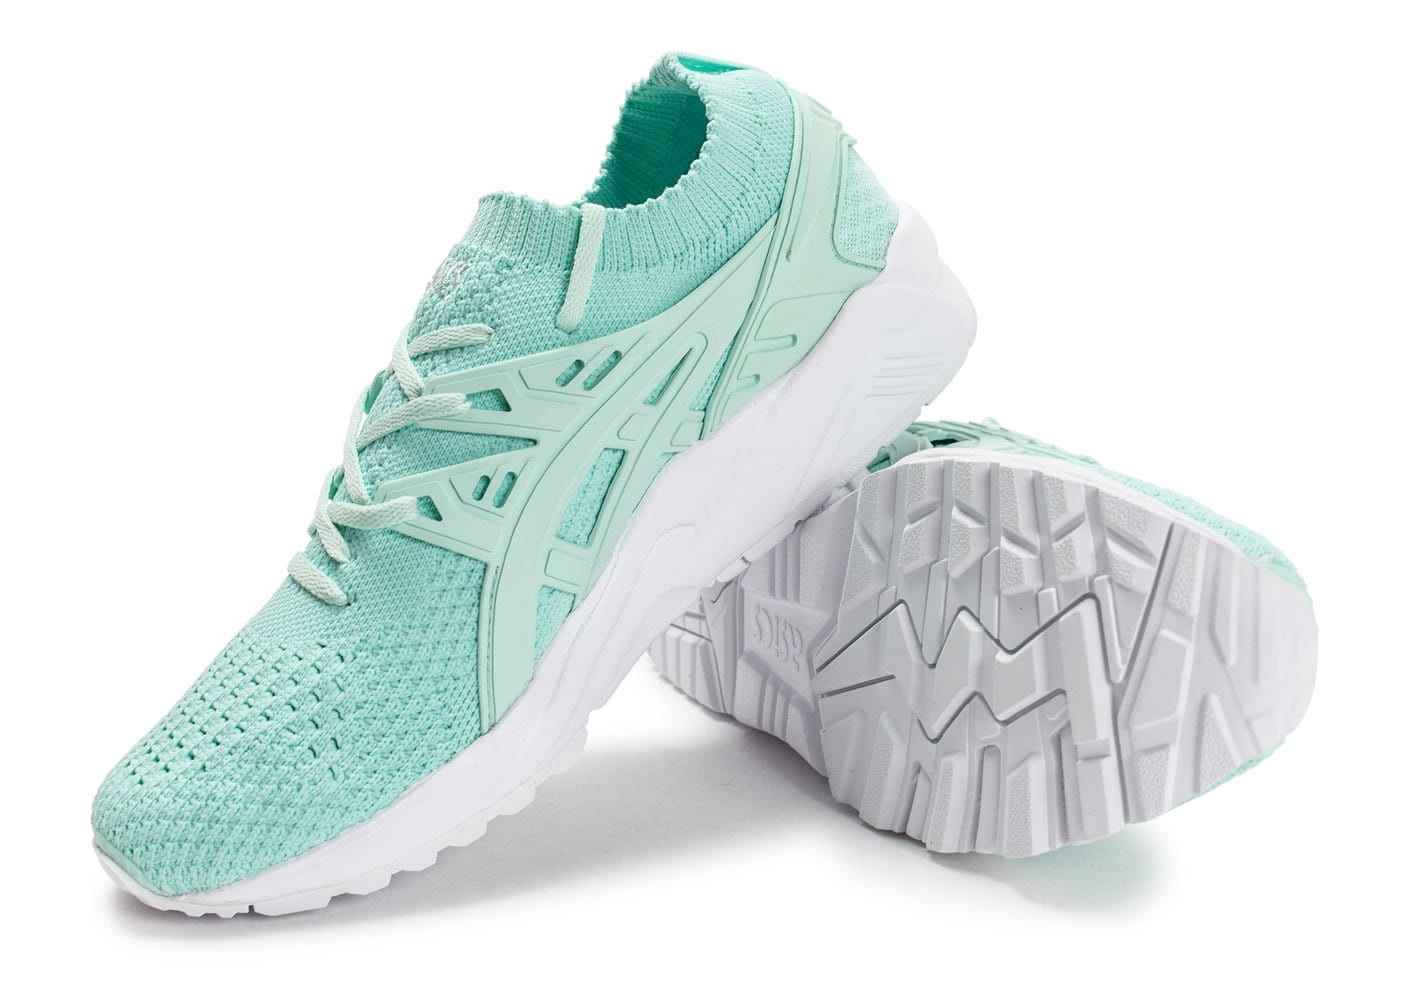 Trainer Asics Femme Y0t8wx6 Baskets Kayano Knit Chaussures Verte Gel 0wY7FYAqxB